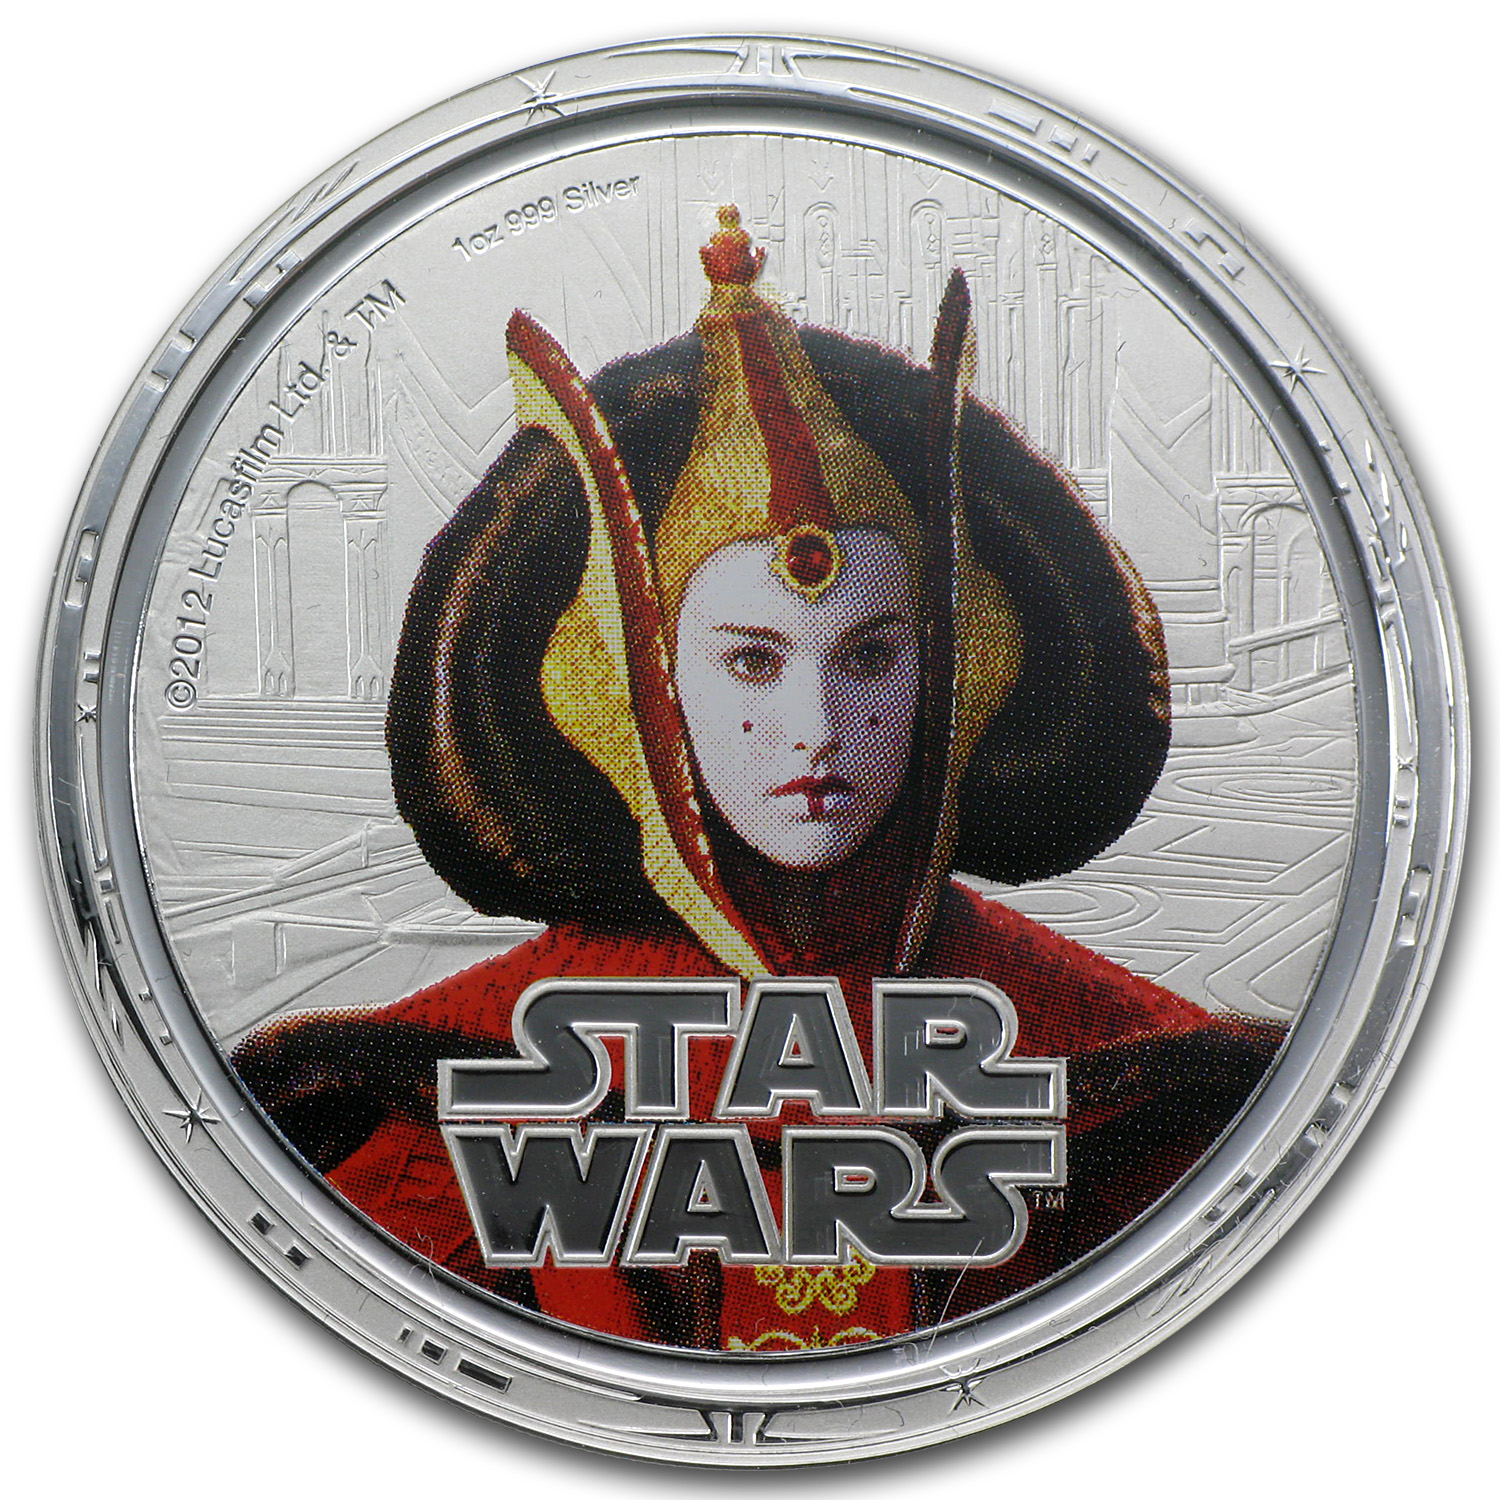 2012 4-Coin Silver Star Wars Darth's Helmet Proof Set (Series 2)